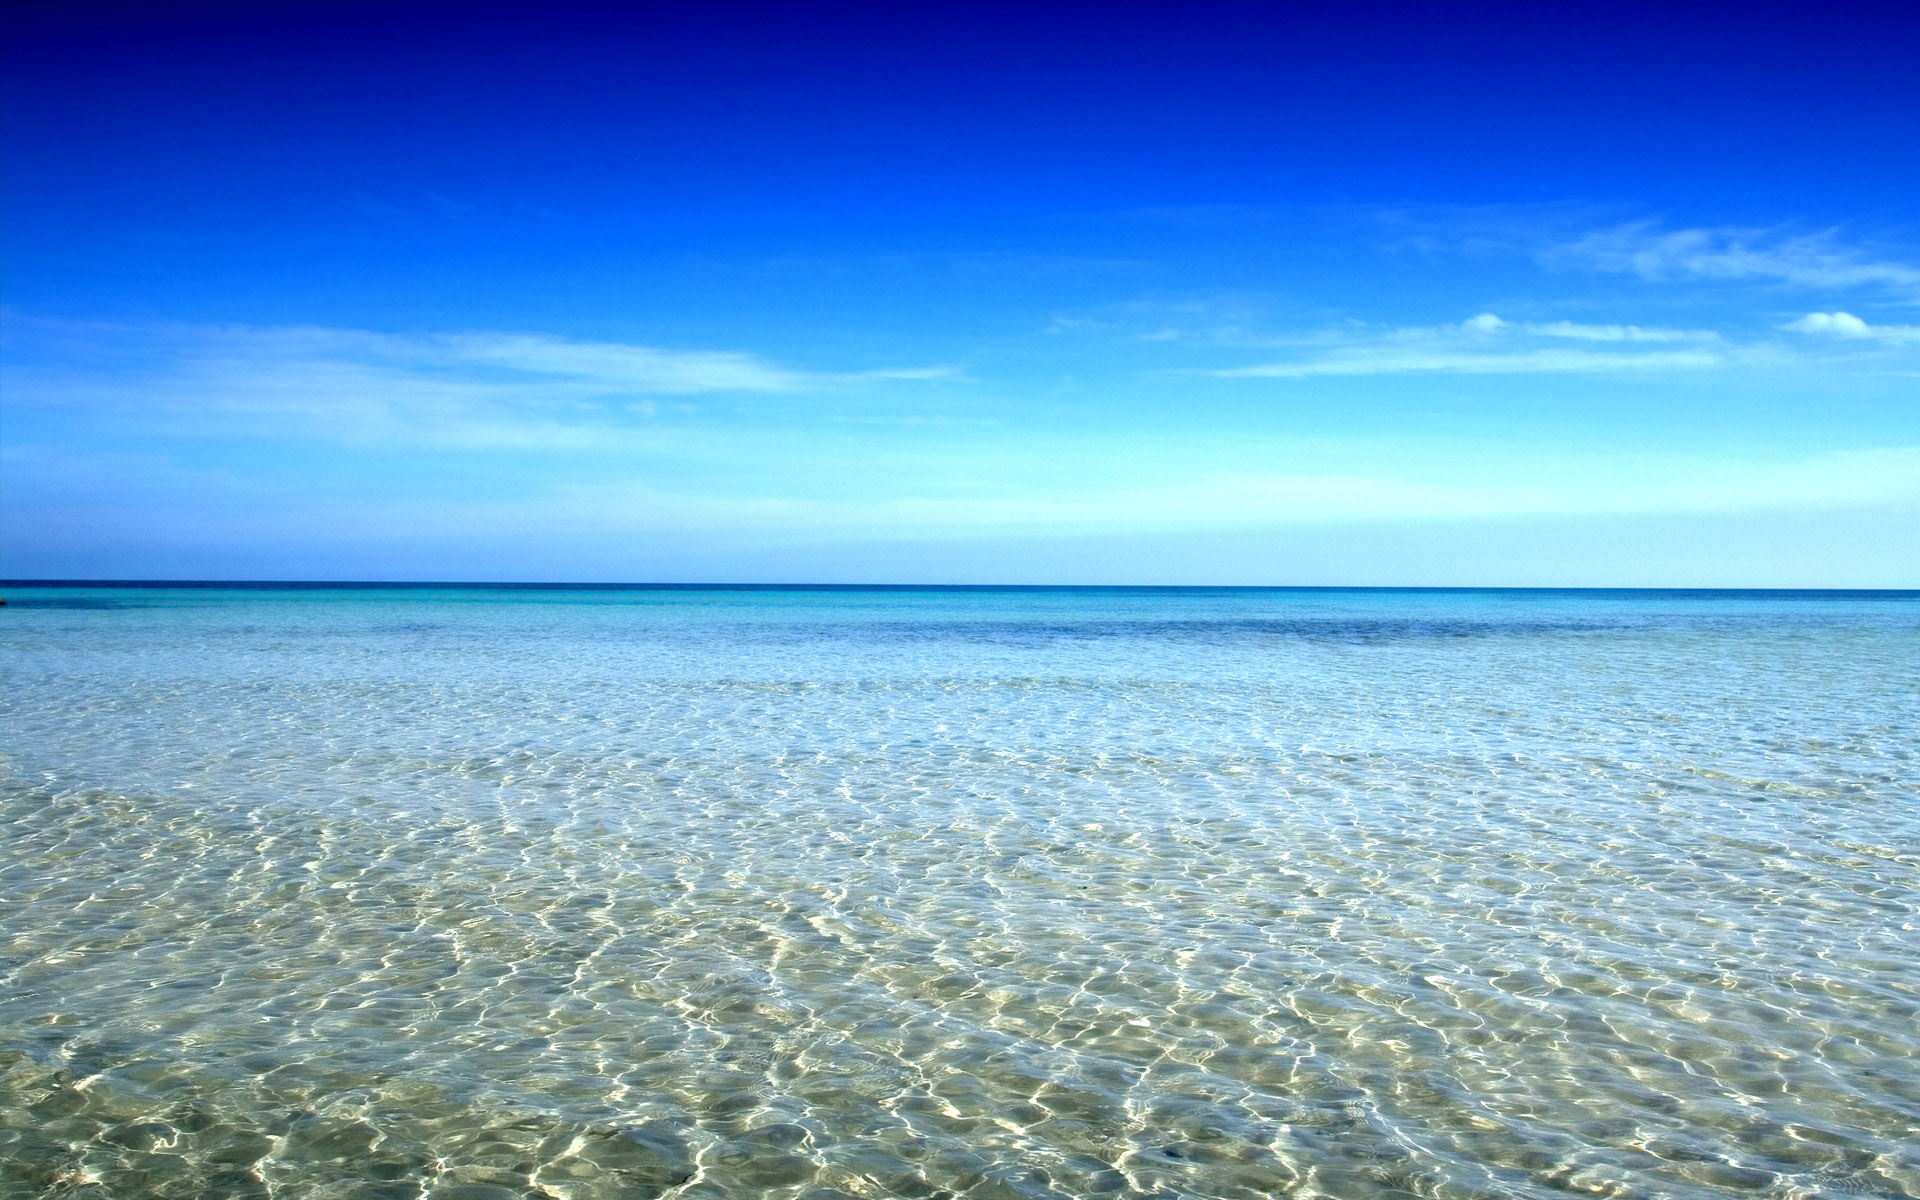 beach wallpaper ocean images 1920x1200 1920x1200